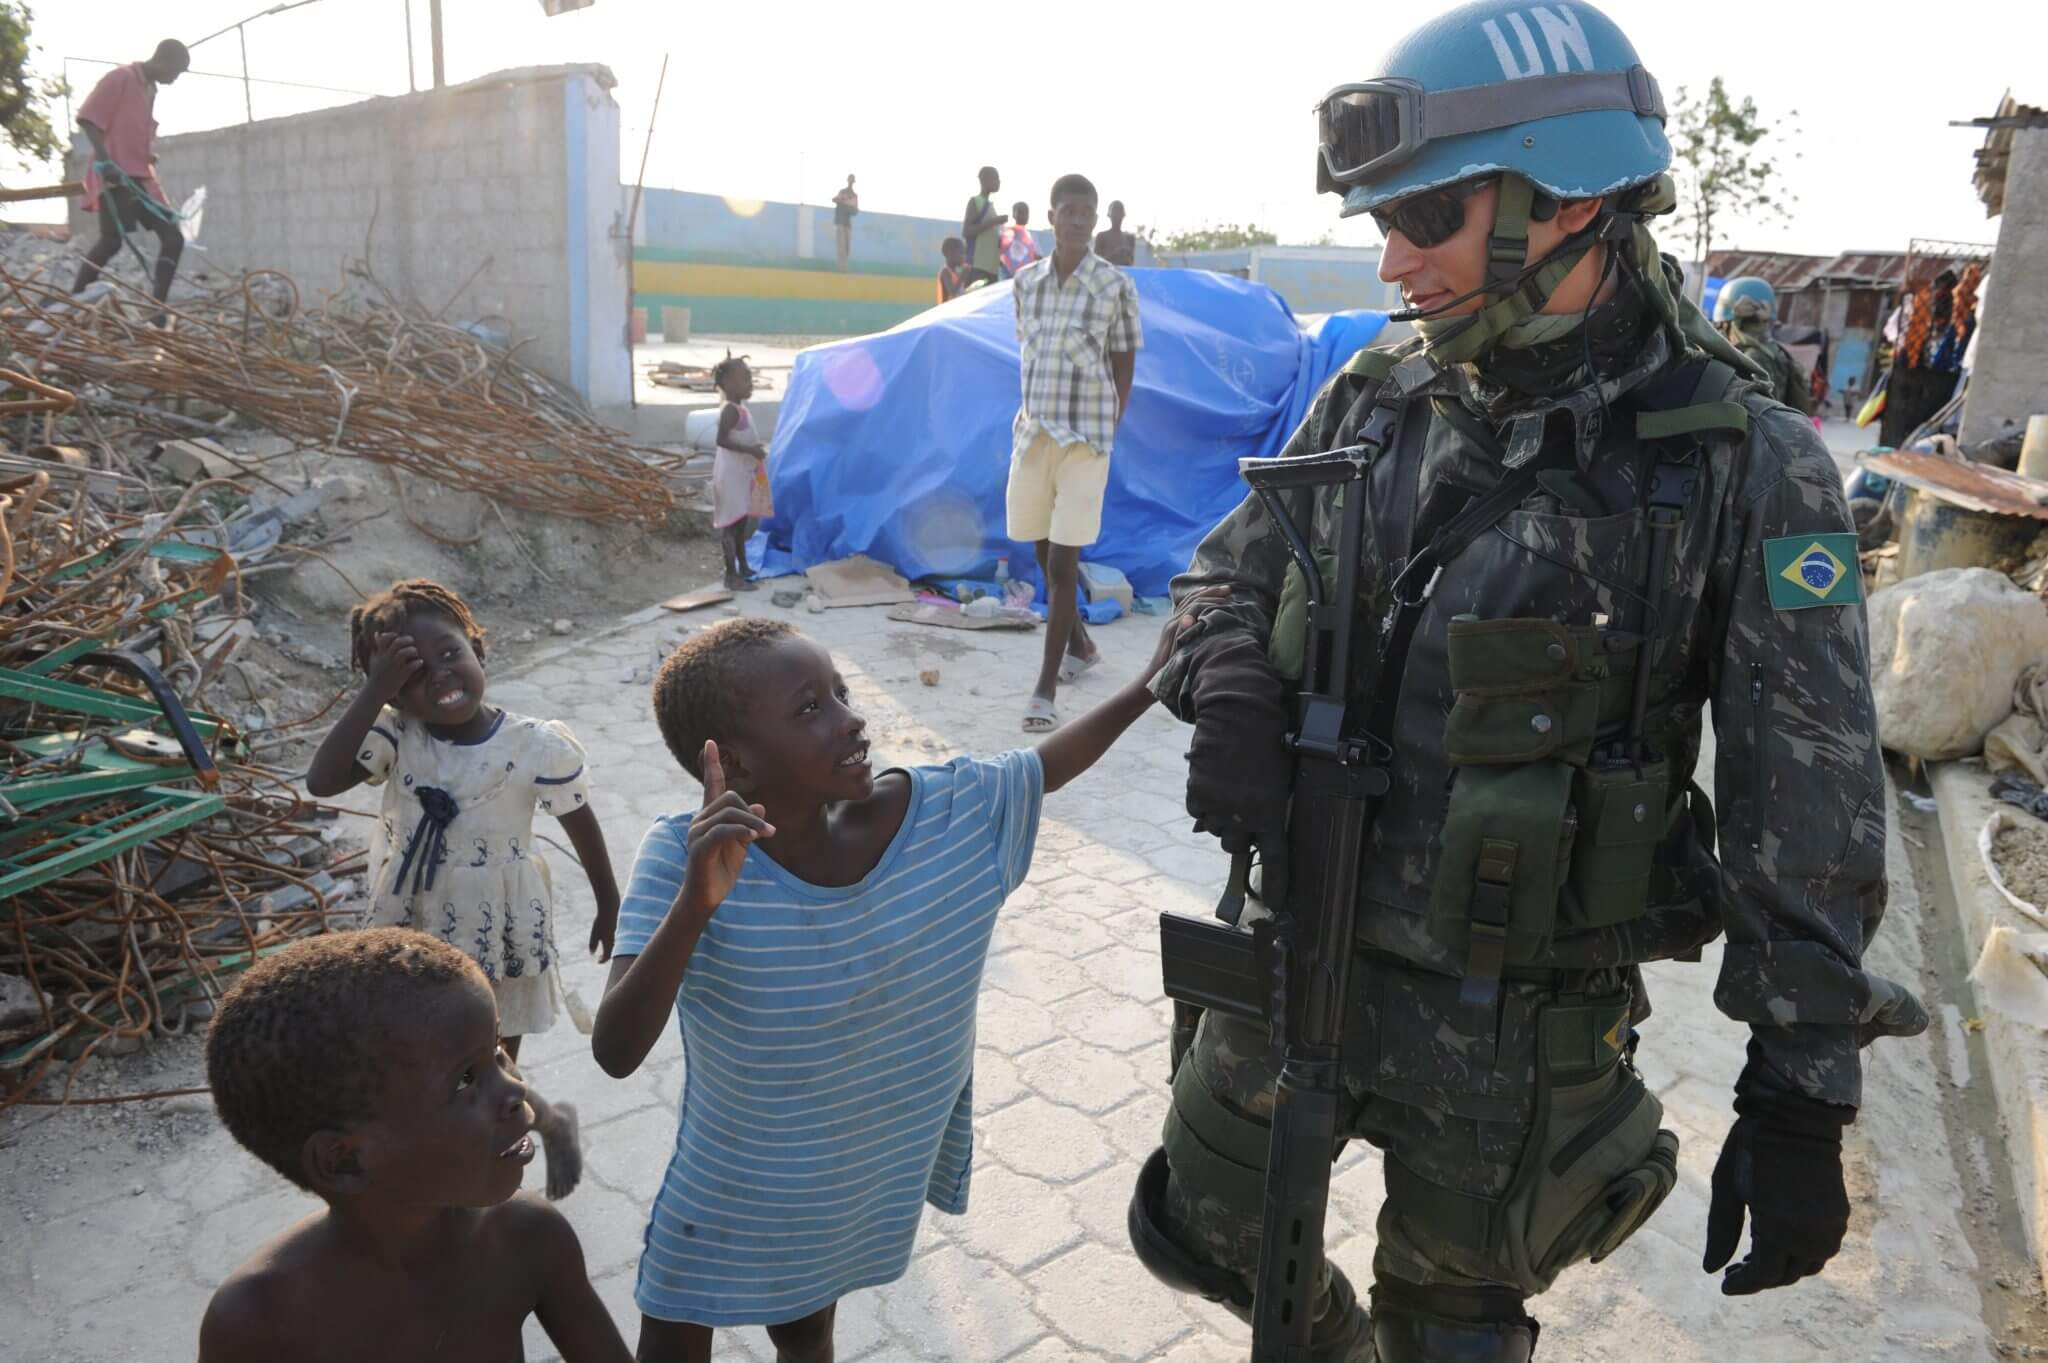 un peacekeeping operations Peacekeeping operations have long been a topic of debate at the un the pkos have been heavily criticized over the last several years despite the remarkable work they accomplish: high cost of the operations, deployments that are too long, allegations of sexual abuse of civilians, etc.